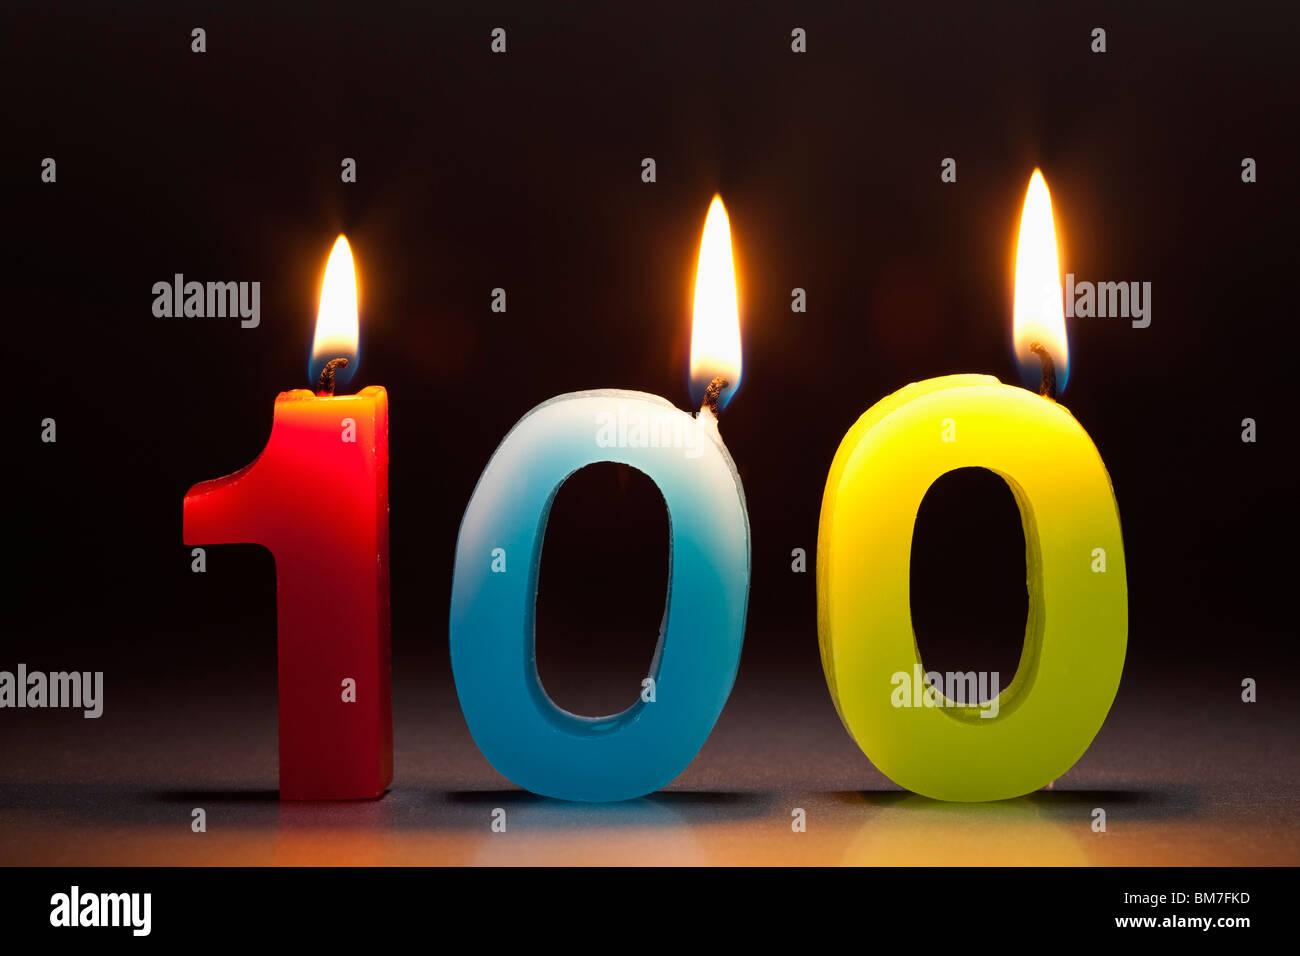 Three Candles In The Shape Of The Number 100 - Stock Image